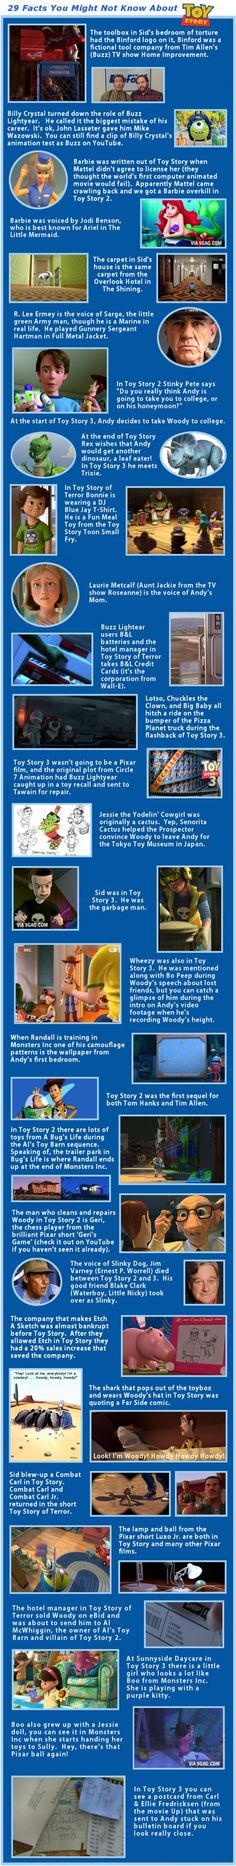 29 Facts You Might Not Know About Toy Story!